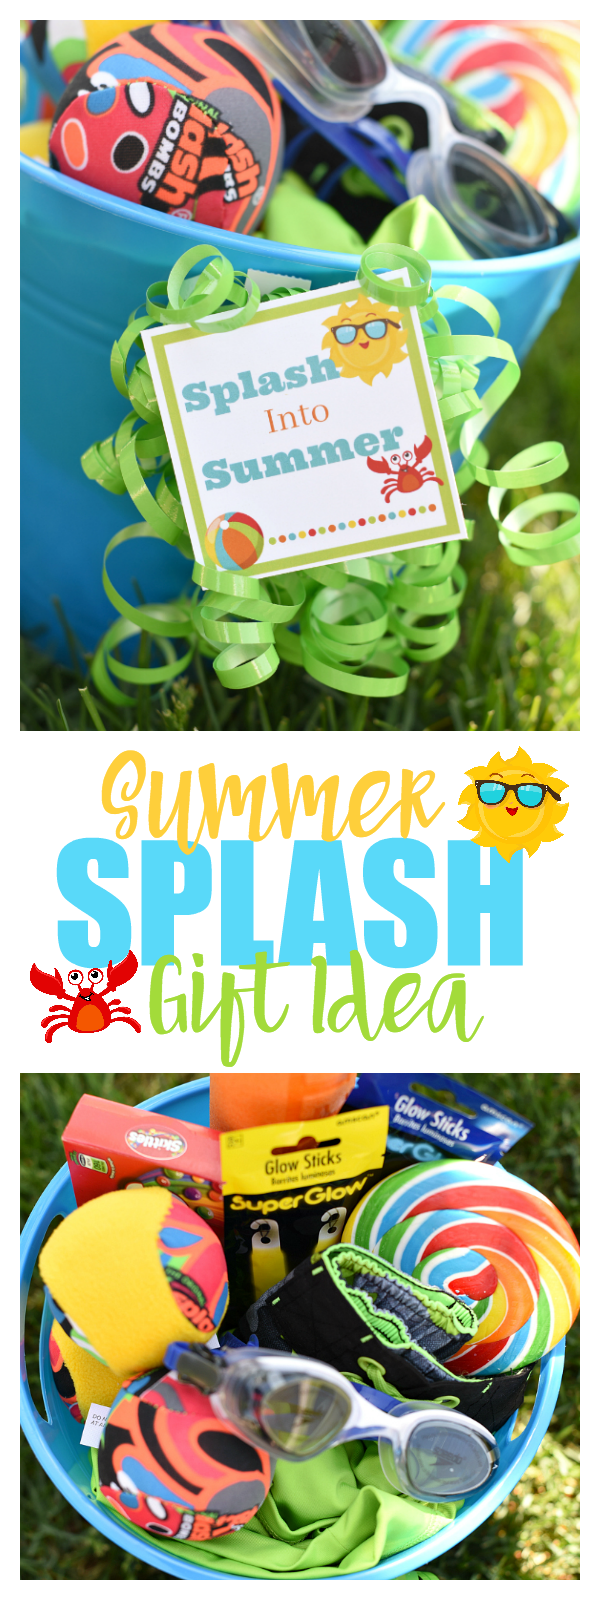 How fun is this Splash into Summer Gift Idea. Love this for the last day of school or a summer birthday gift.